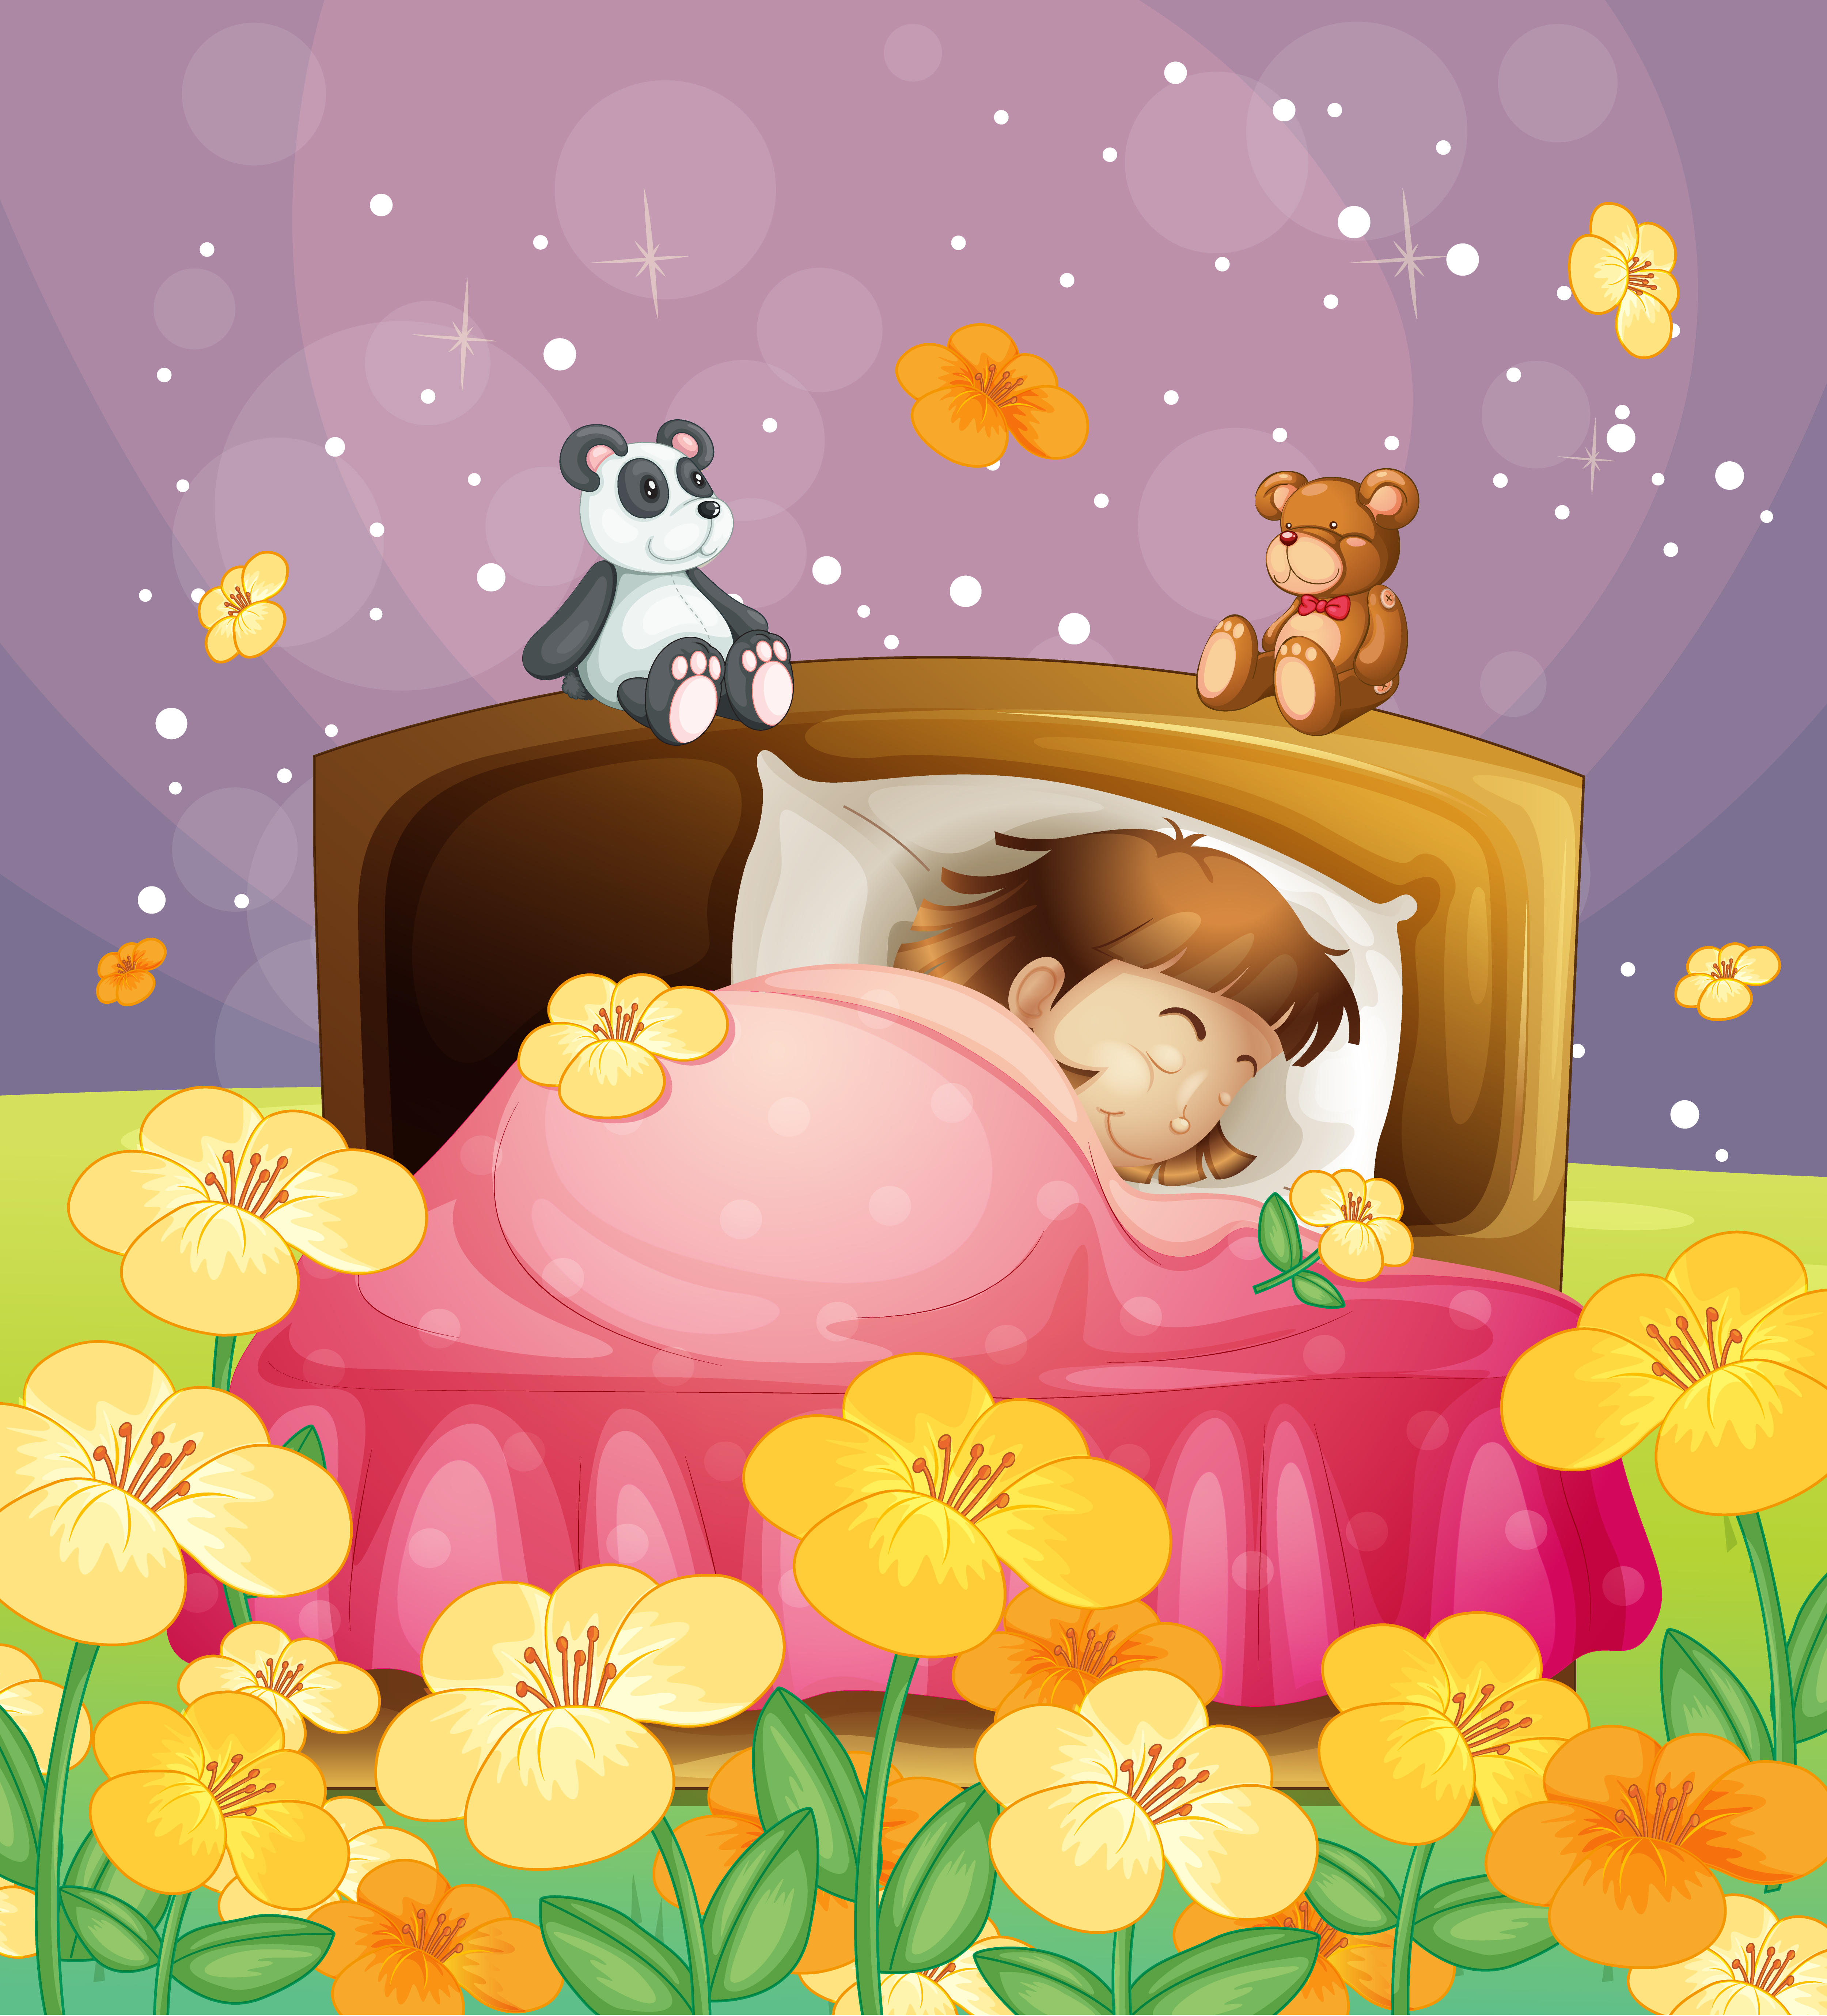 A Girl Sleeping In Her Bed Download Free Vector Art